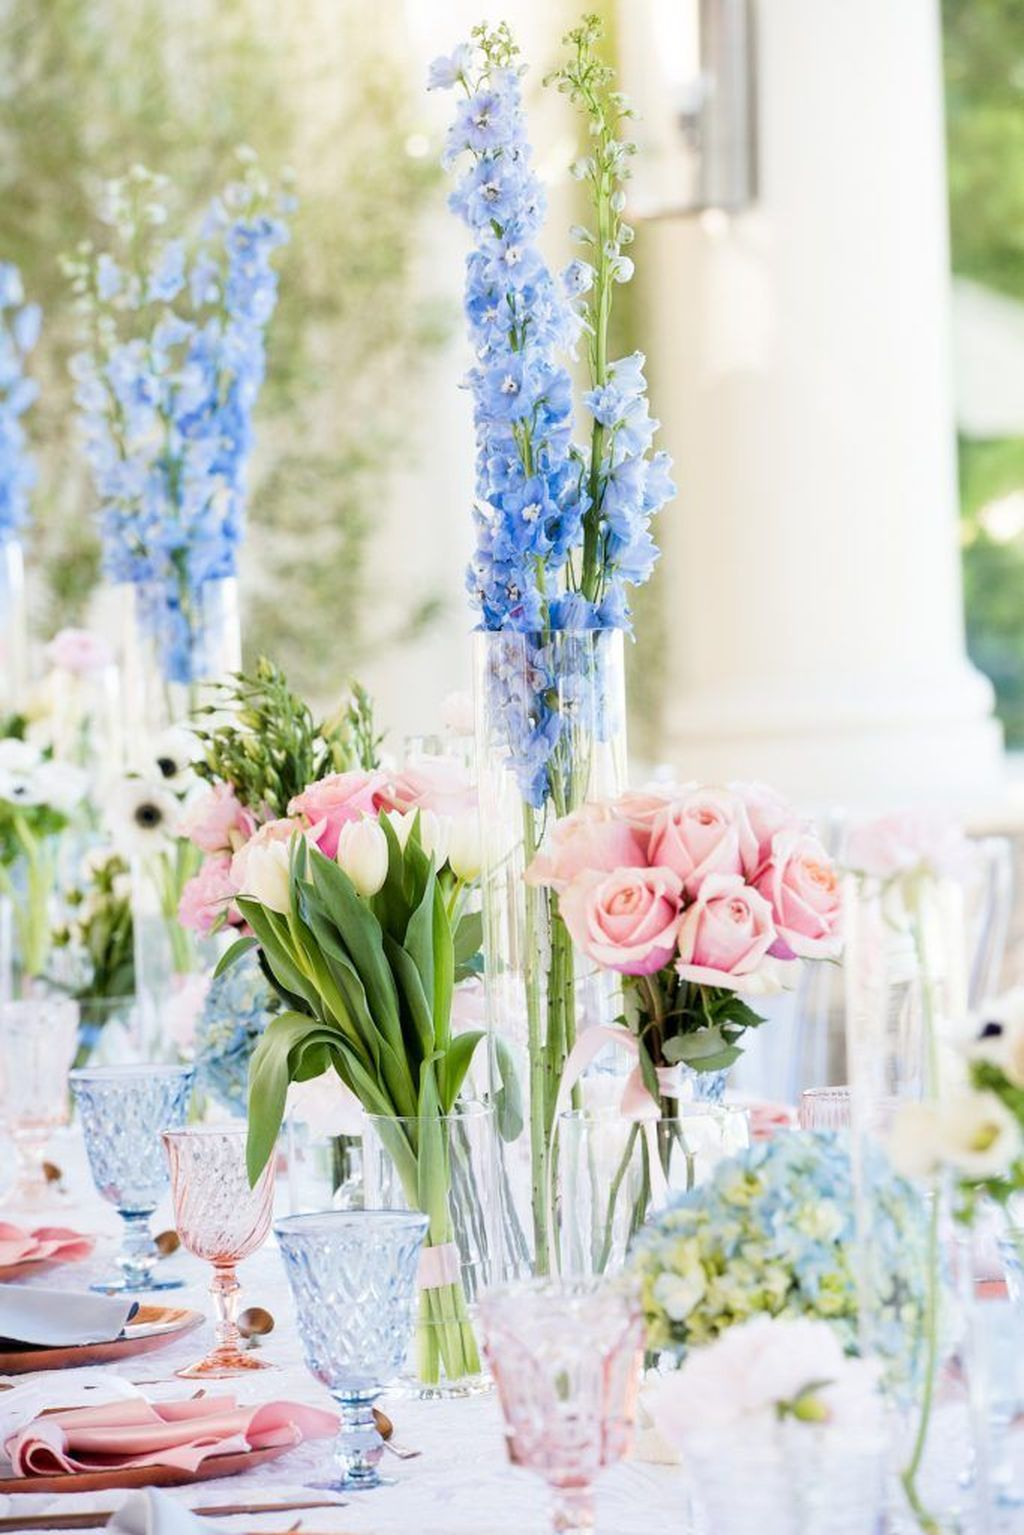 Fabulous Floral Theme Party Decor Ideas Best For Summertime 21